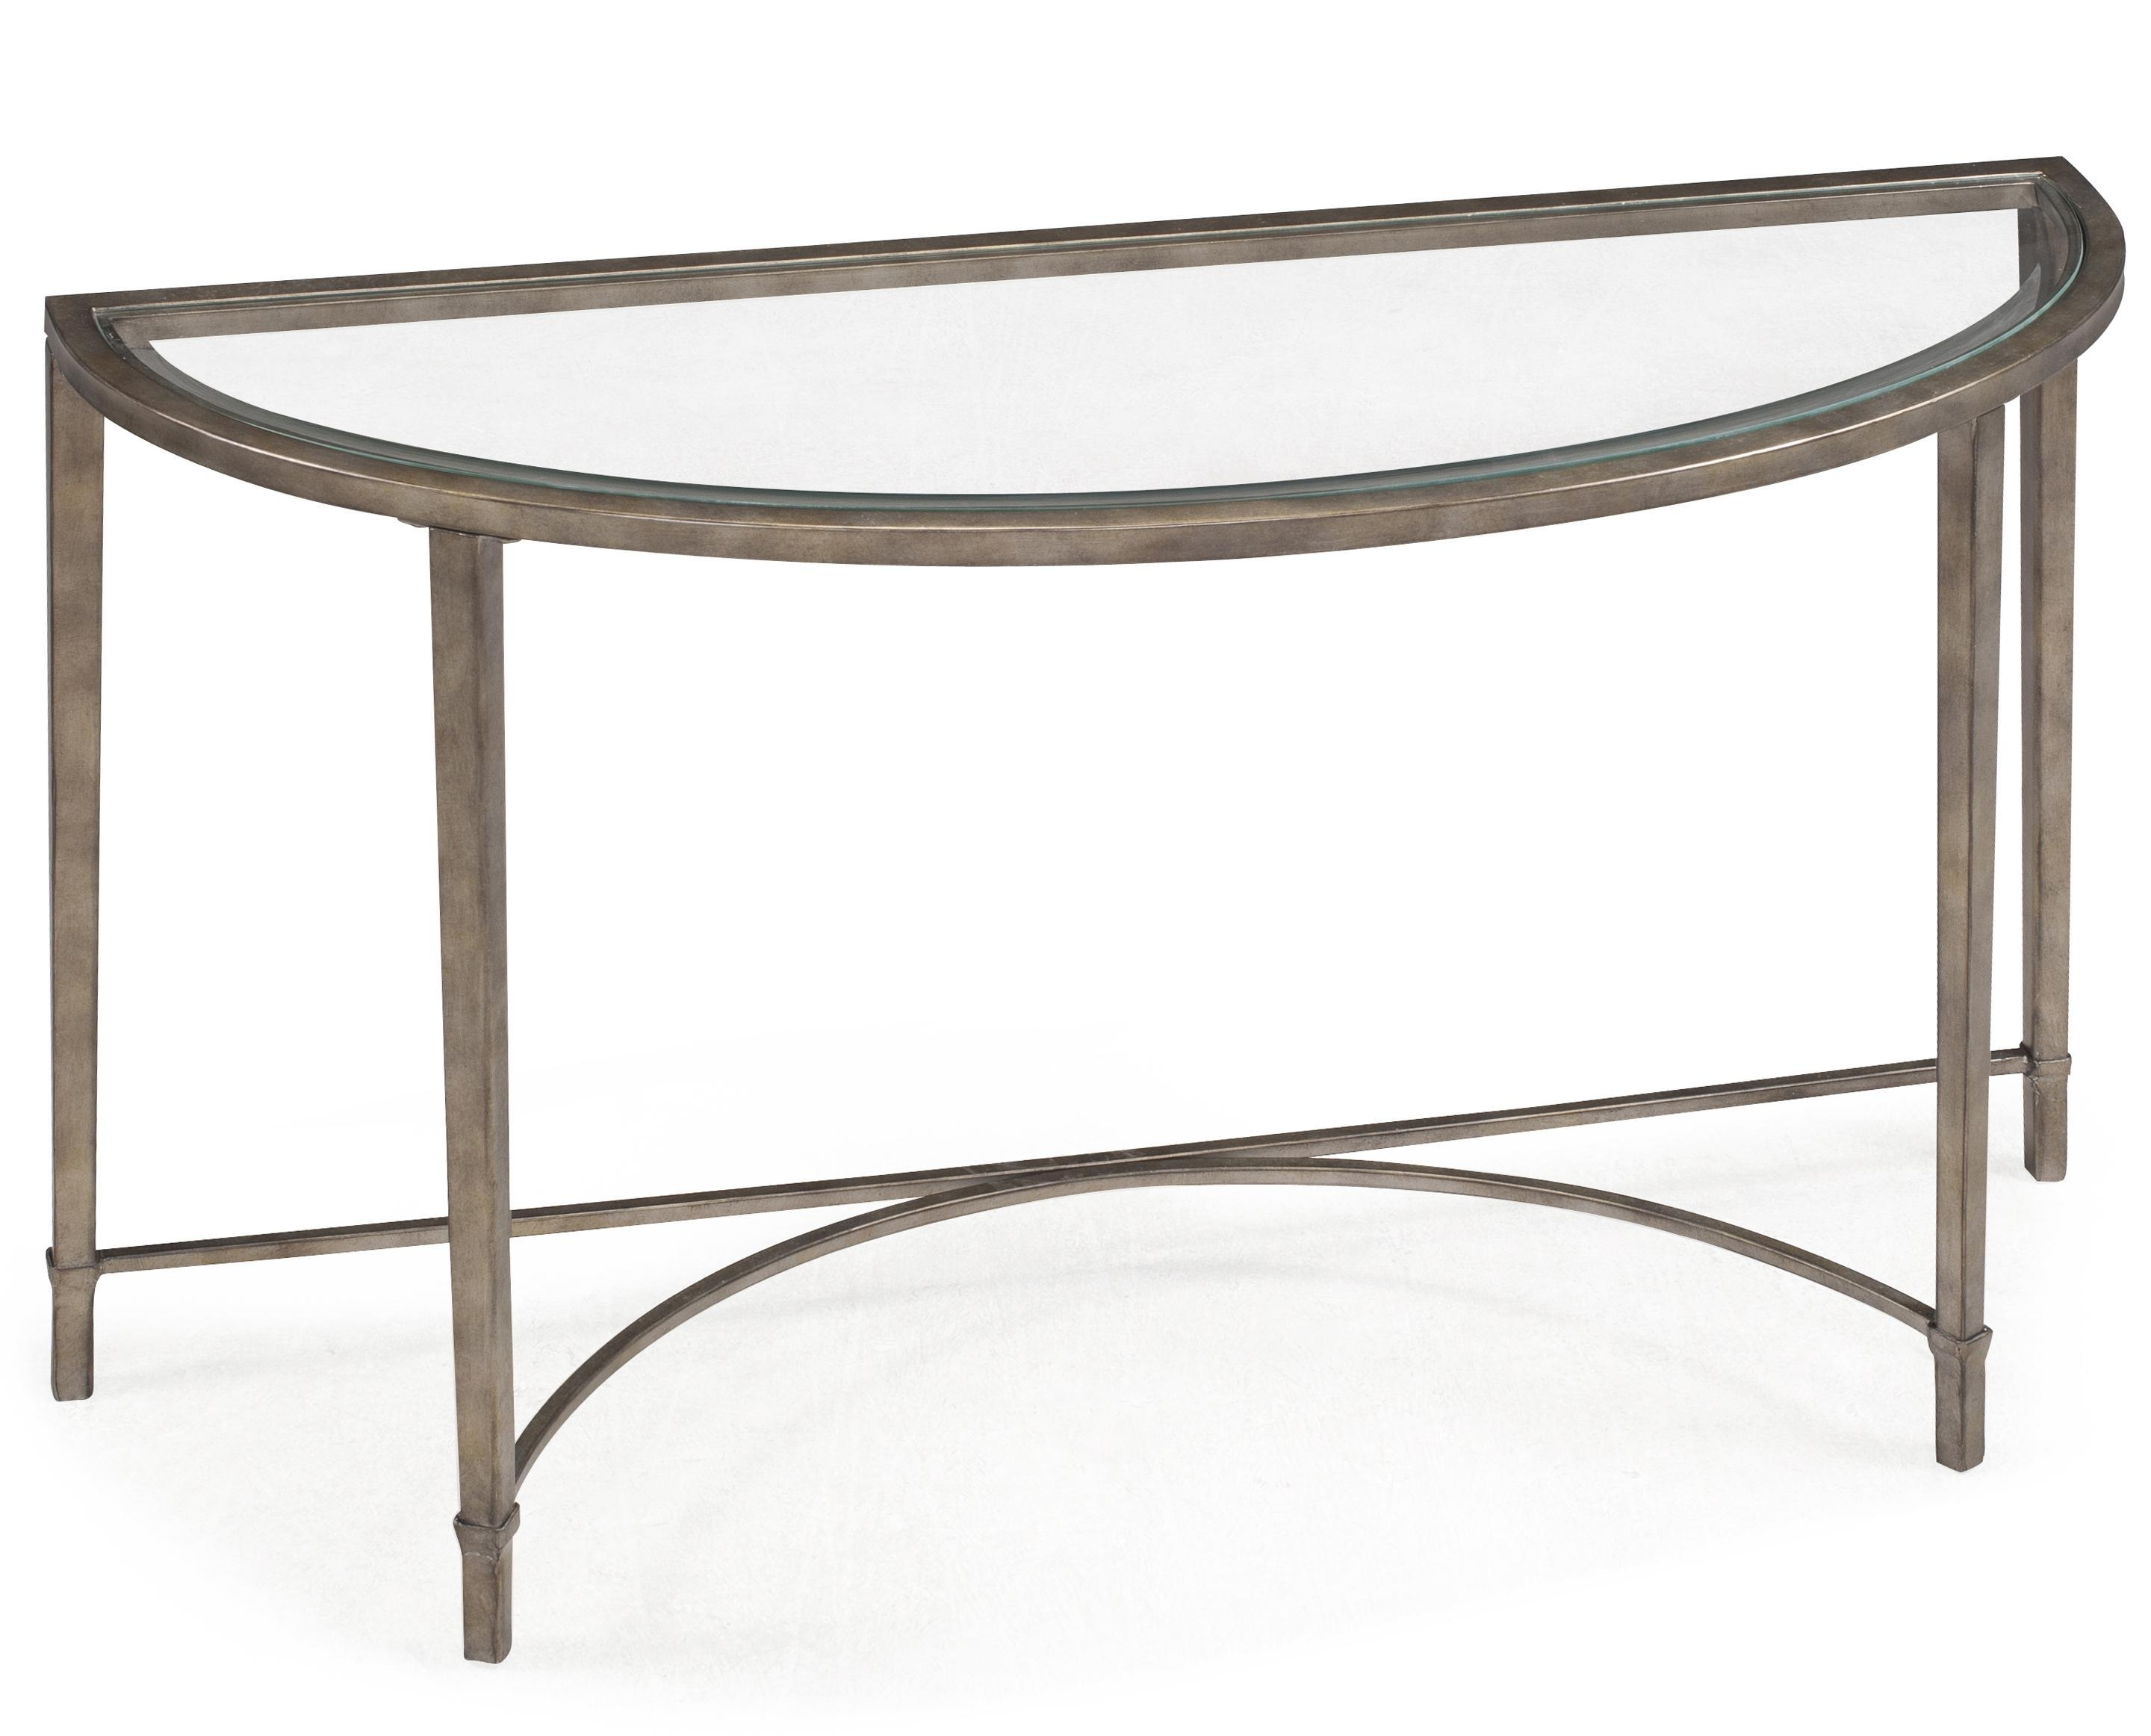 Metal And Glass Demilune Sofa Tablemagnussen Home | Wolf And Pertaining To Metal Glass Sofa Tables (Image 10 of 22)